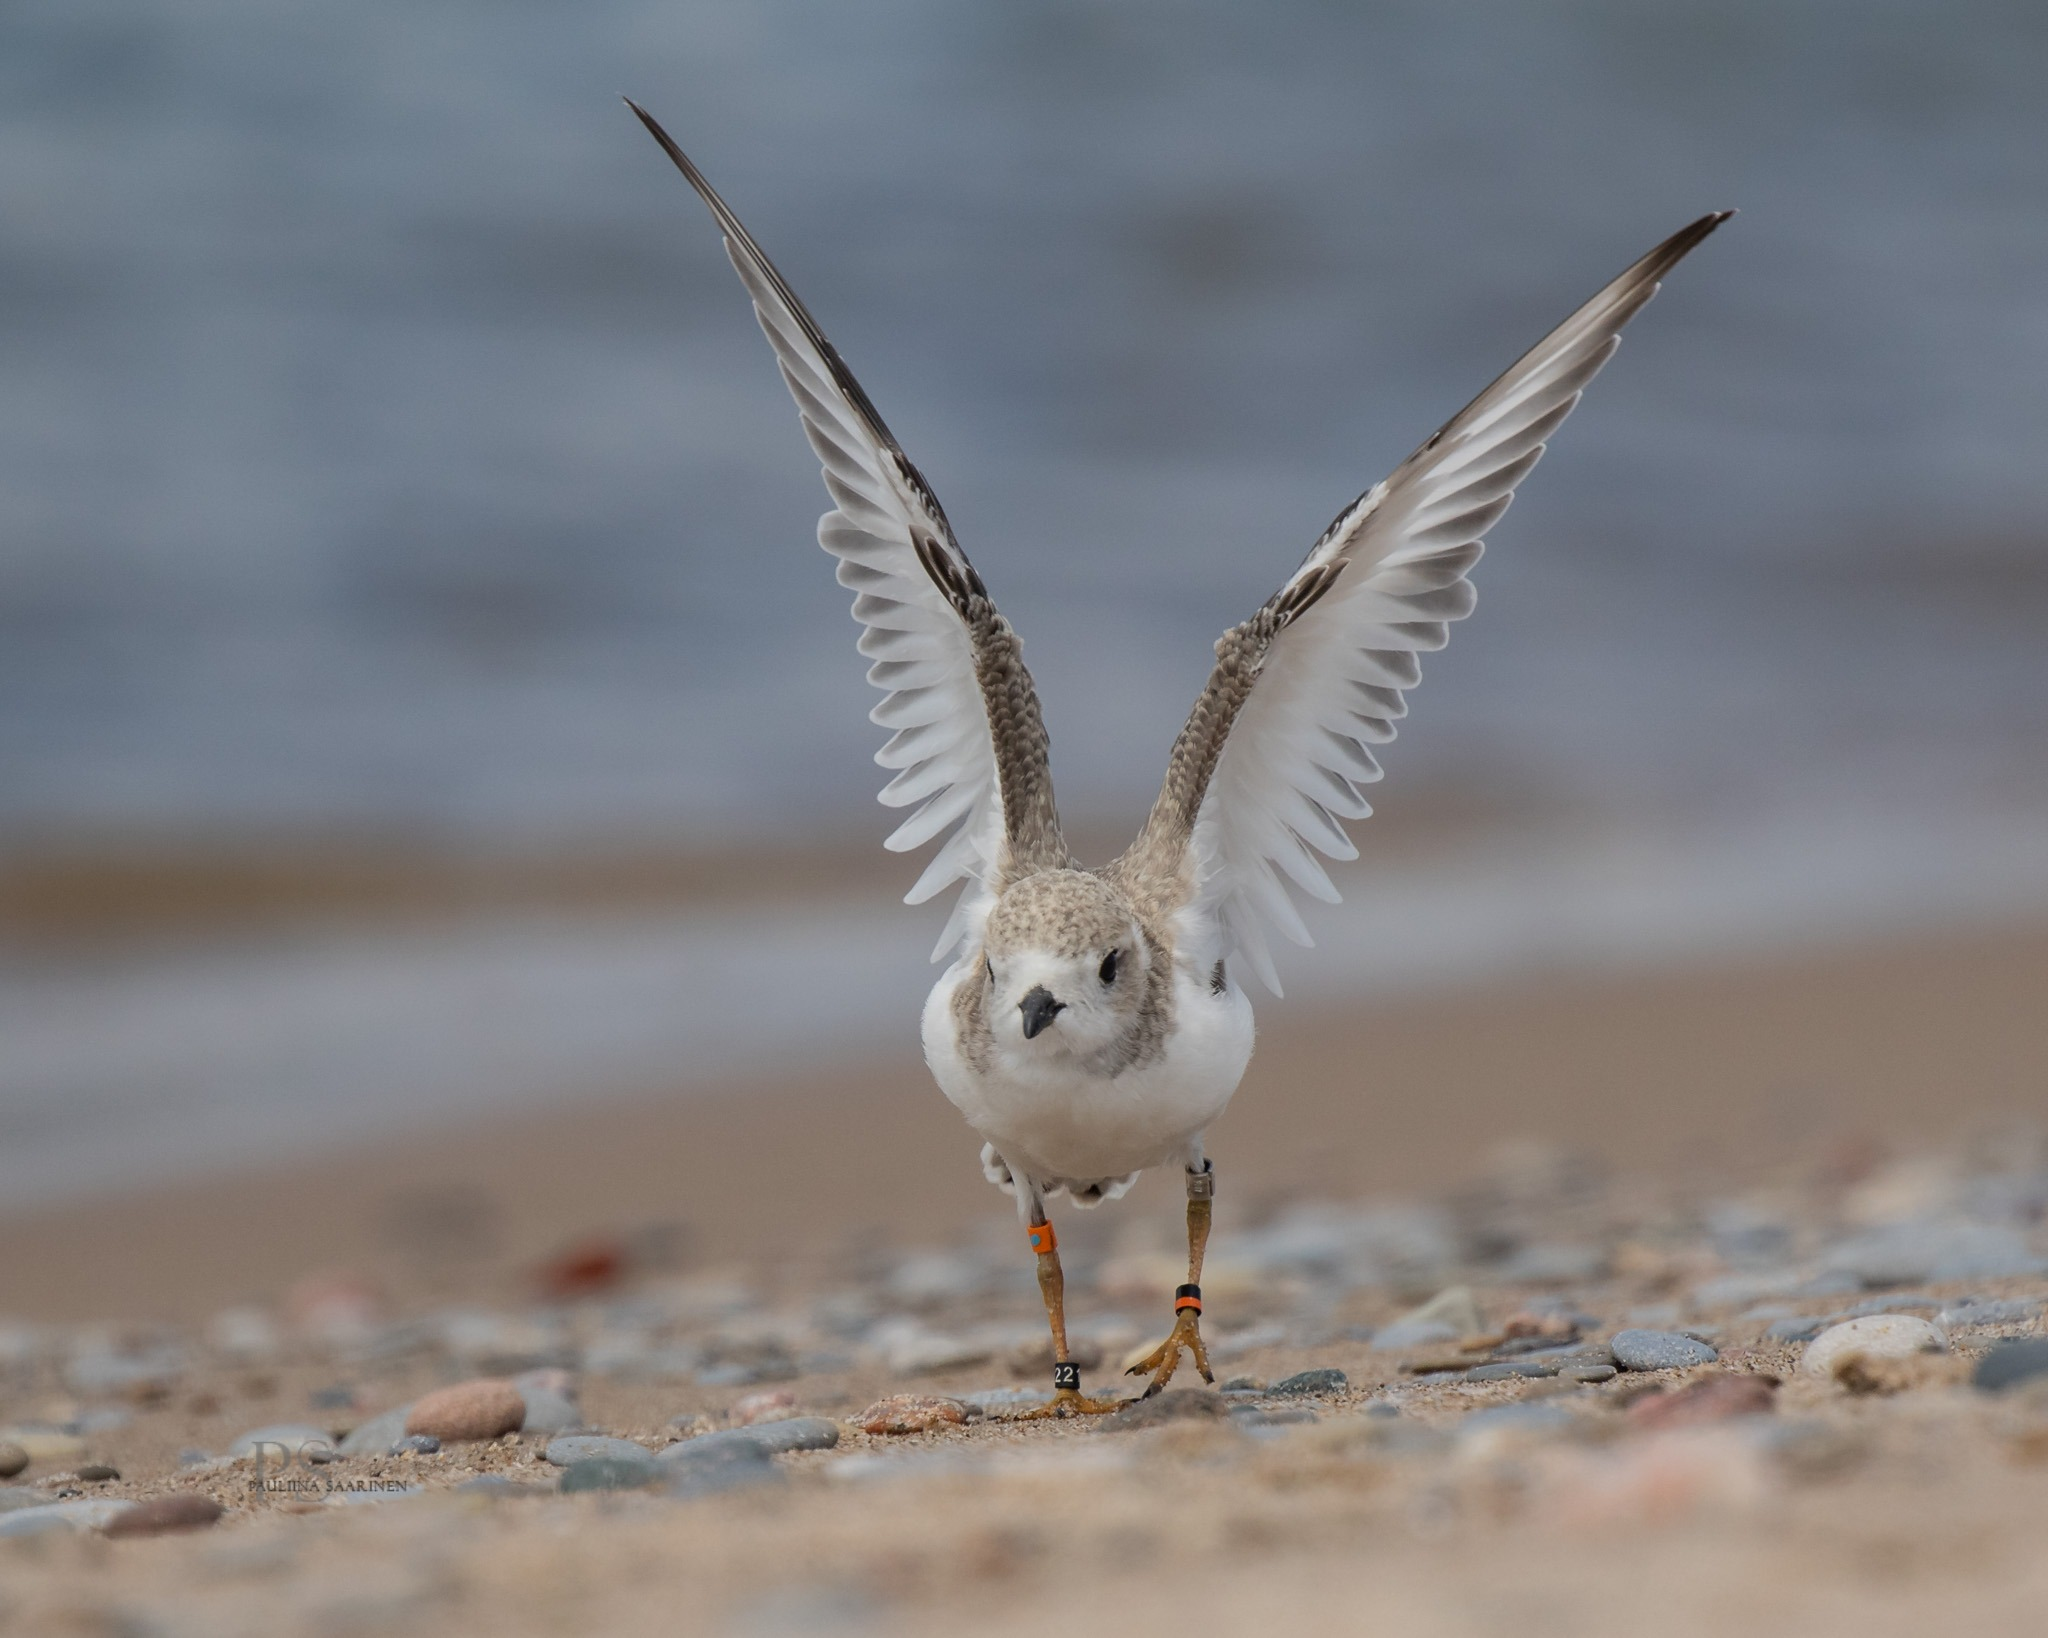 Ontario Piping Plover Conservation Program